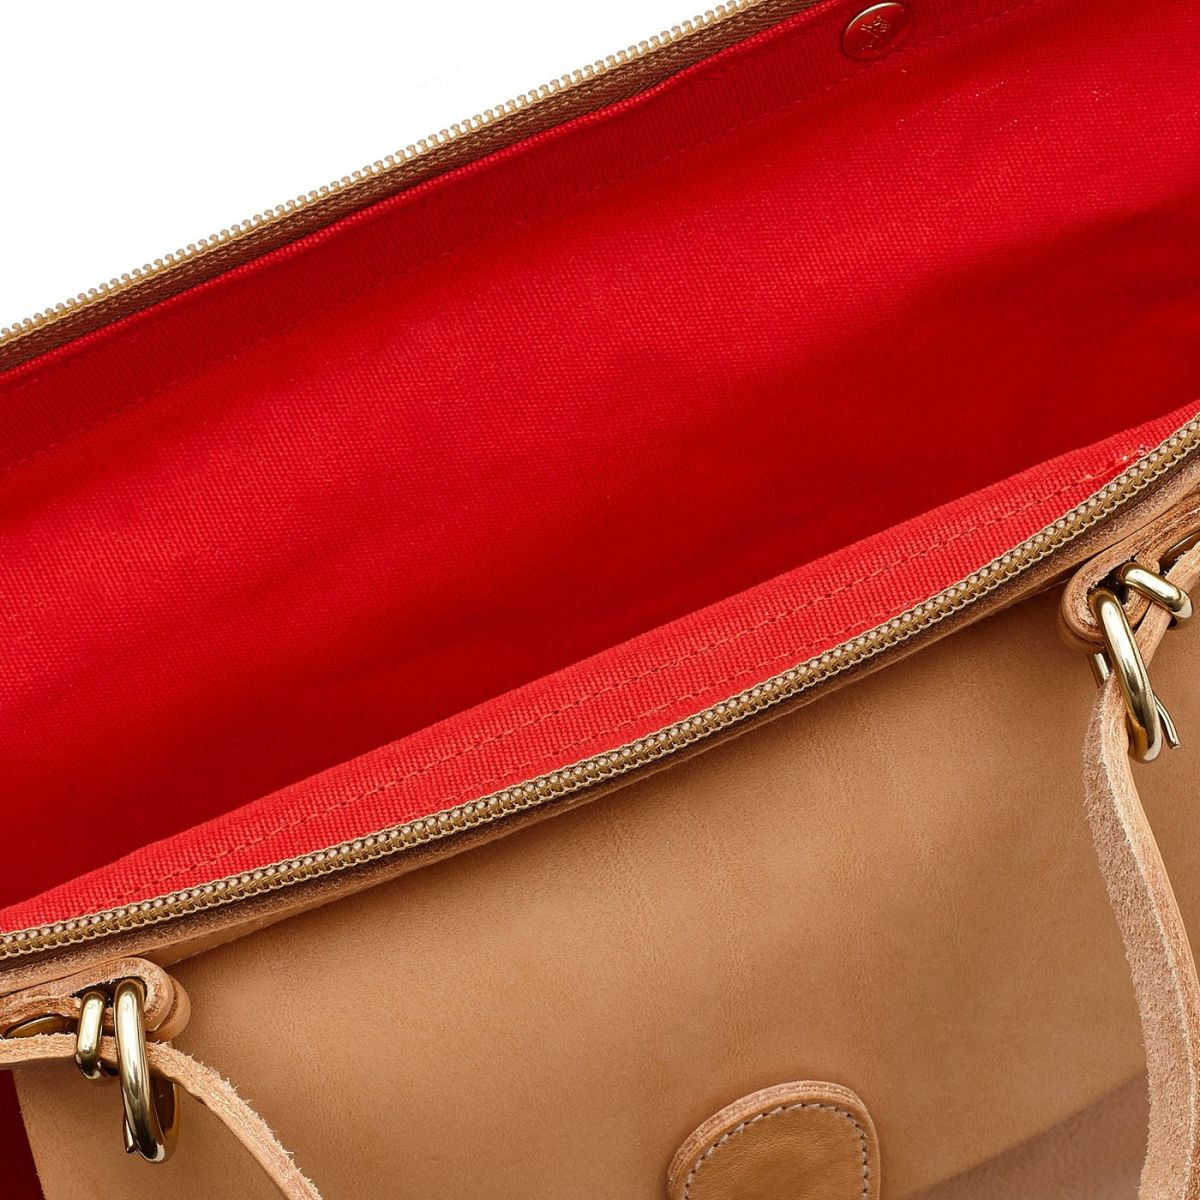 Maremmana  - Women's Handbag  in Cotton Canvas BTH012 color Red/Natural | Details